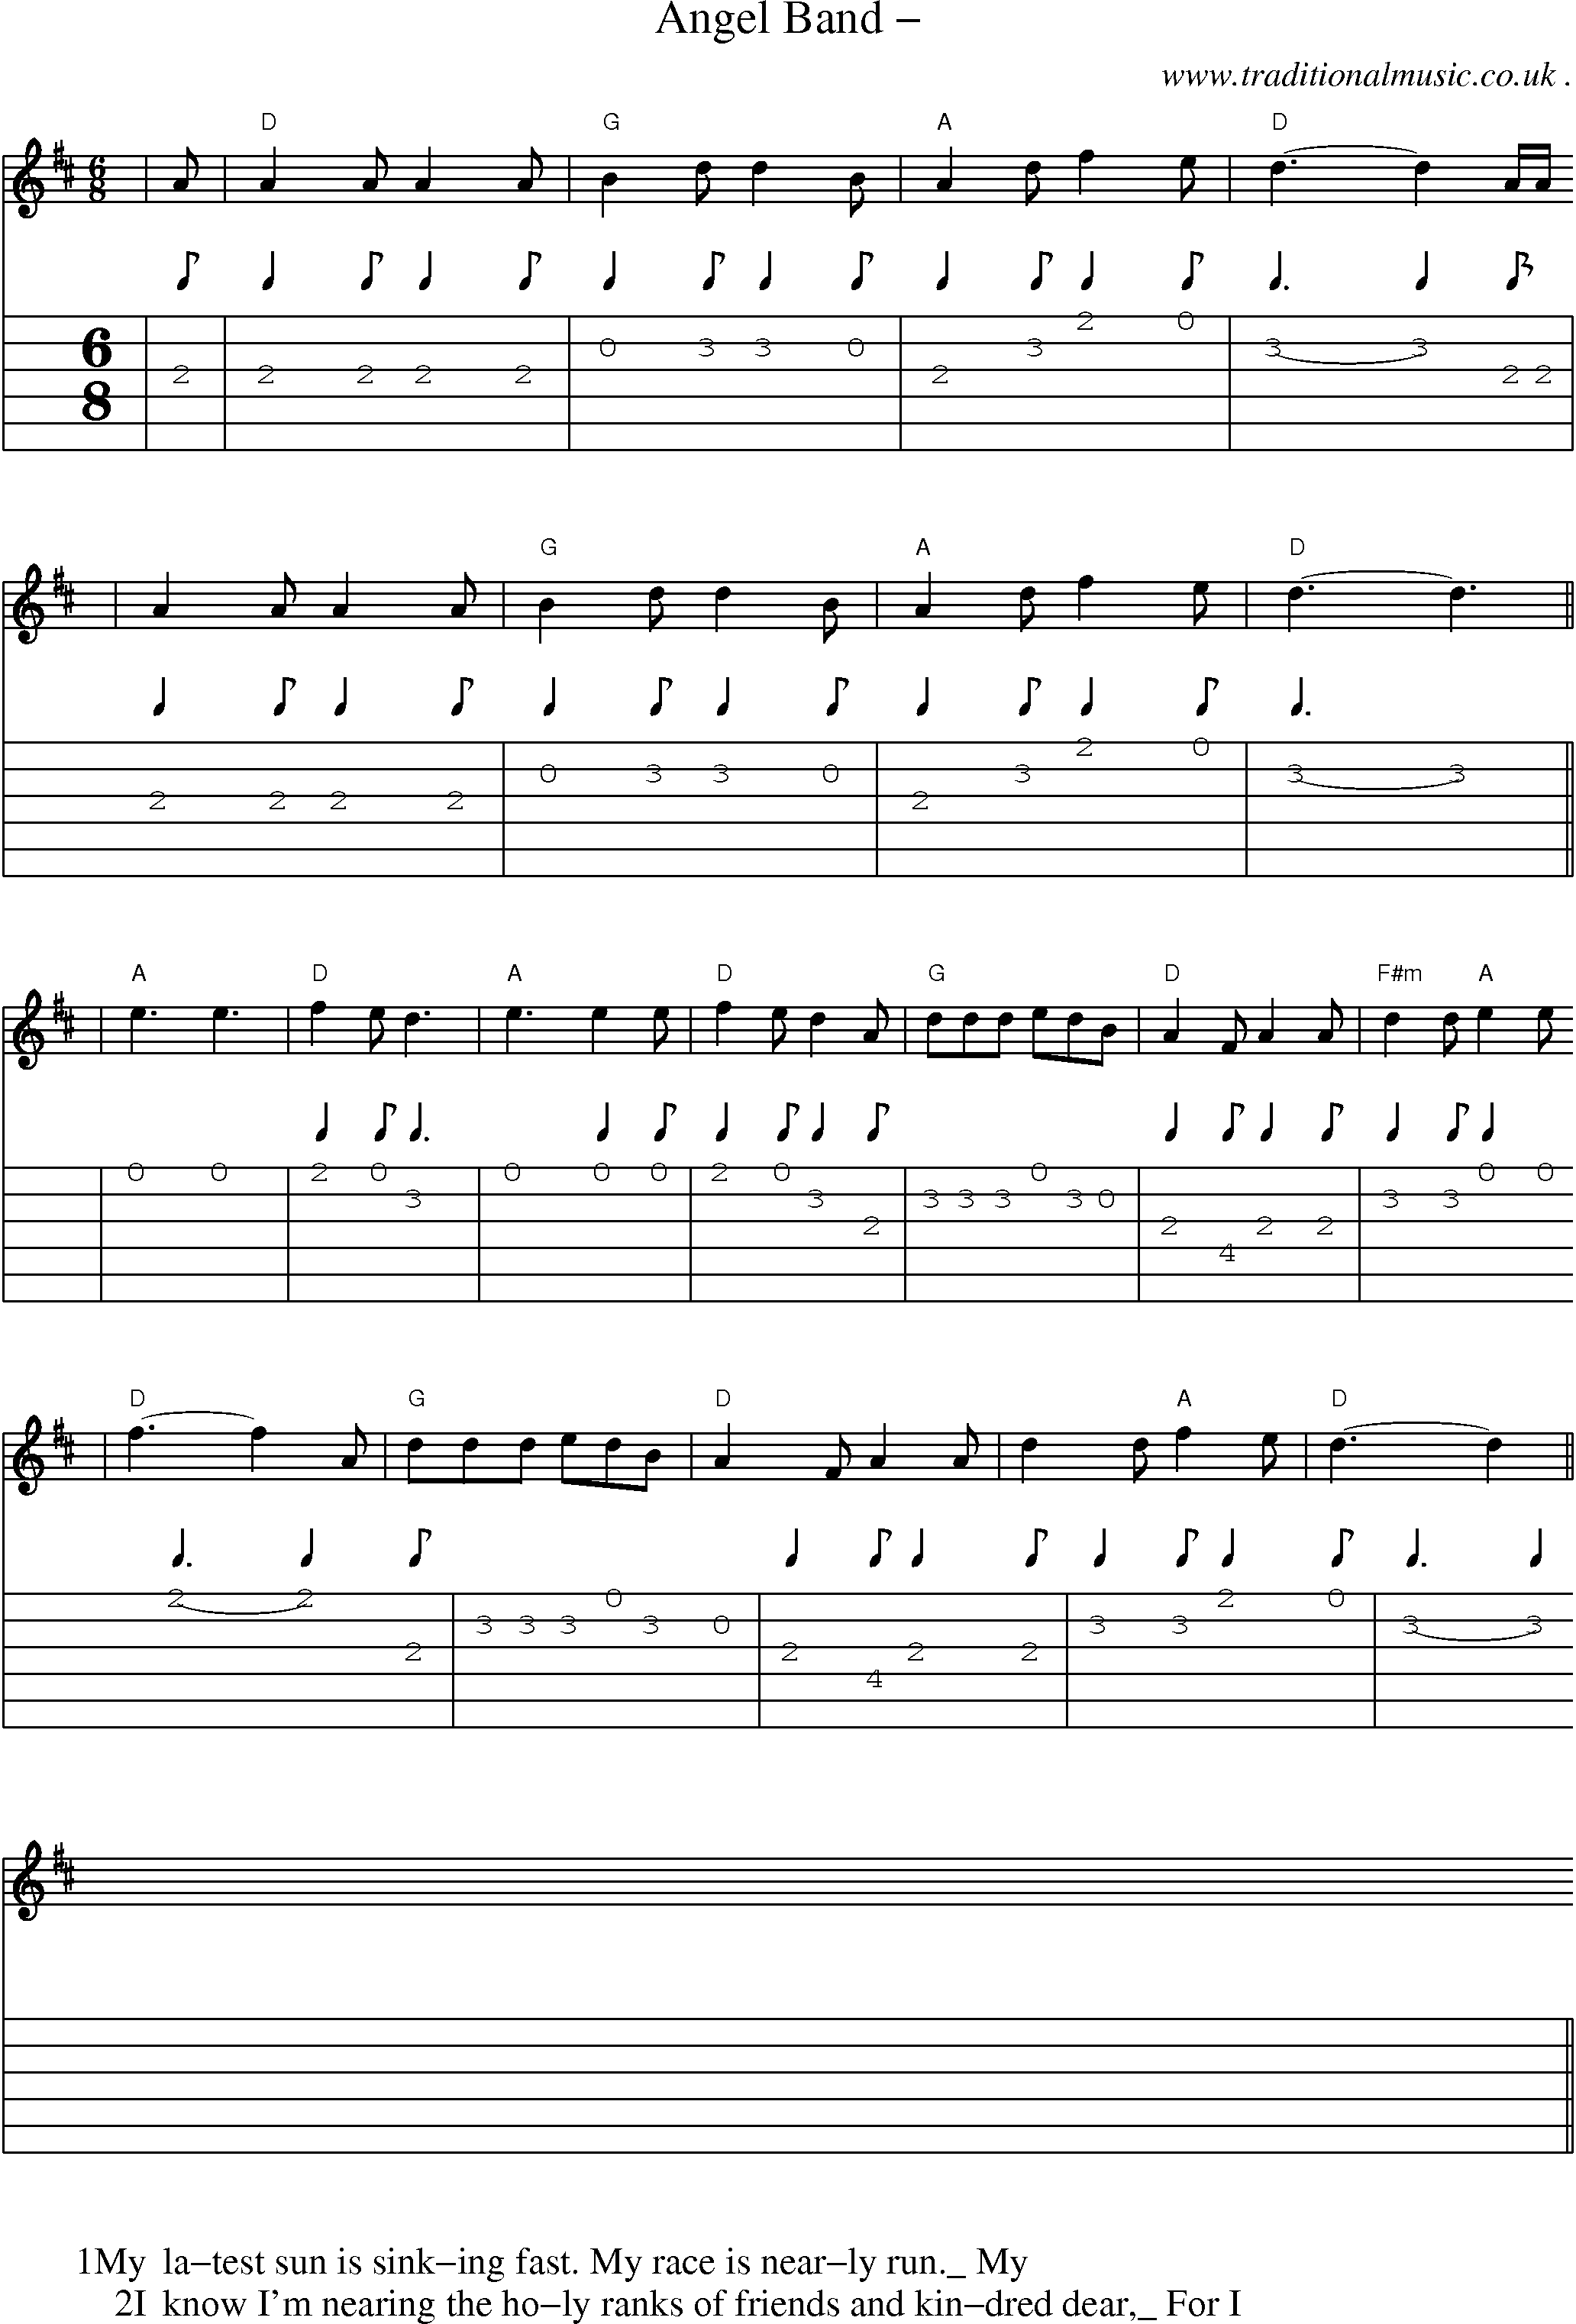 american old time music scores and tabs for guitar angel band. Black Bedroom Furniture Sets. Home Design Ideas